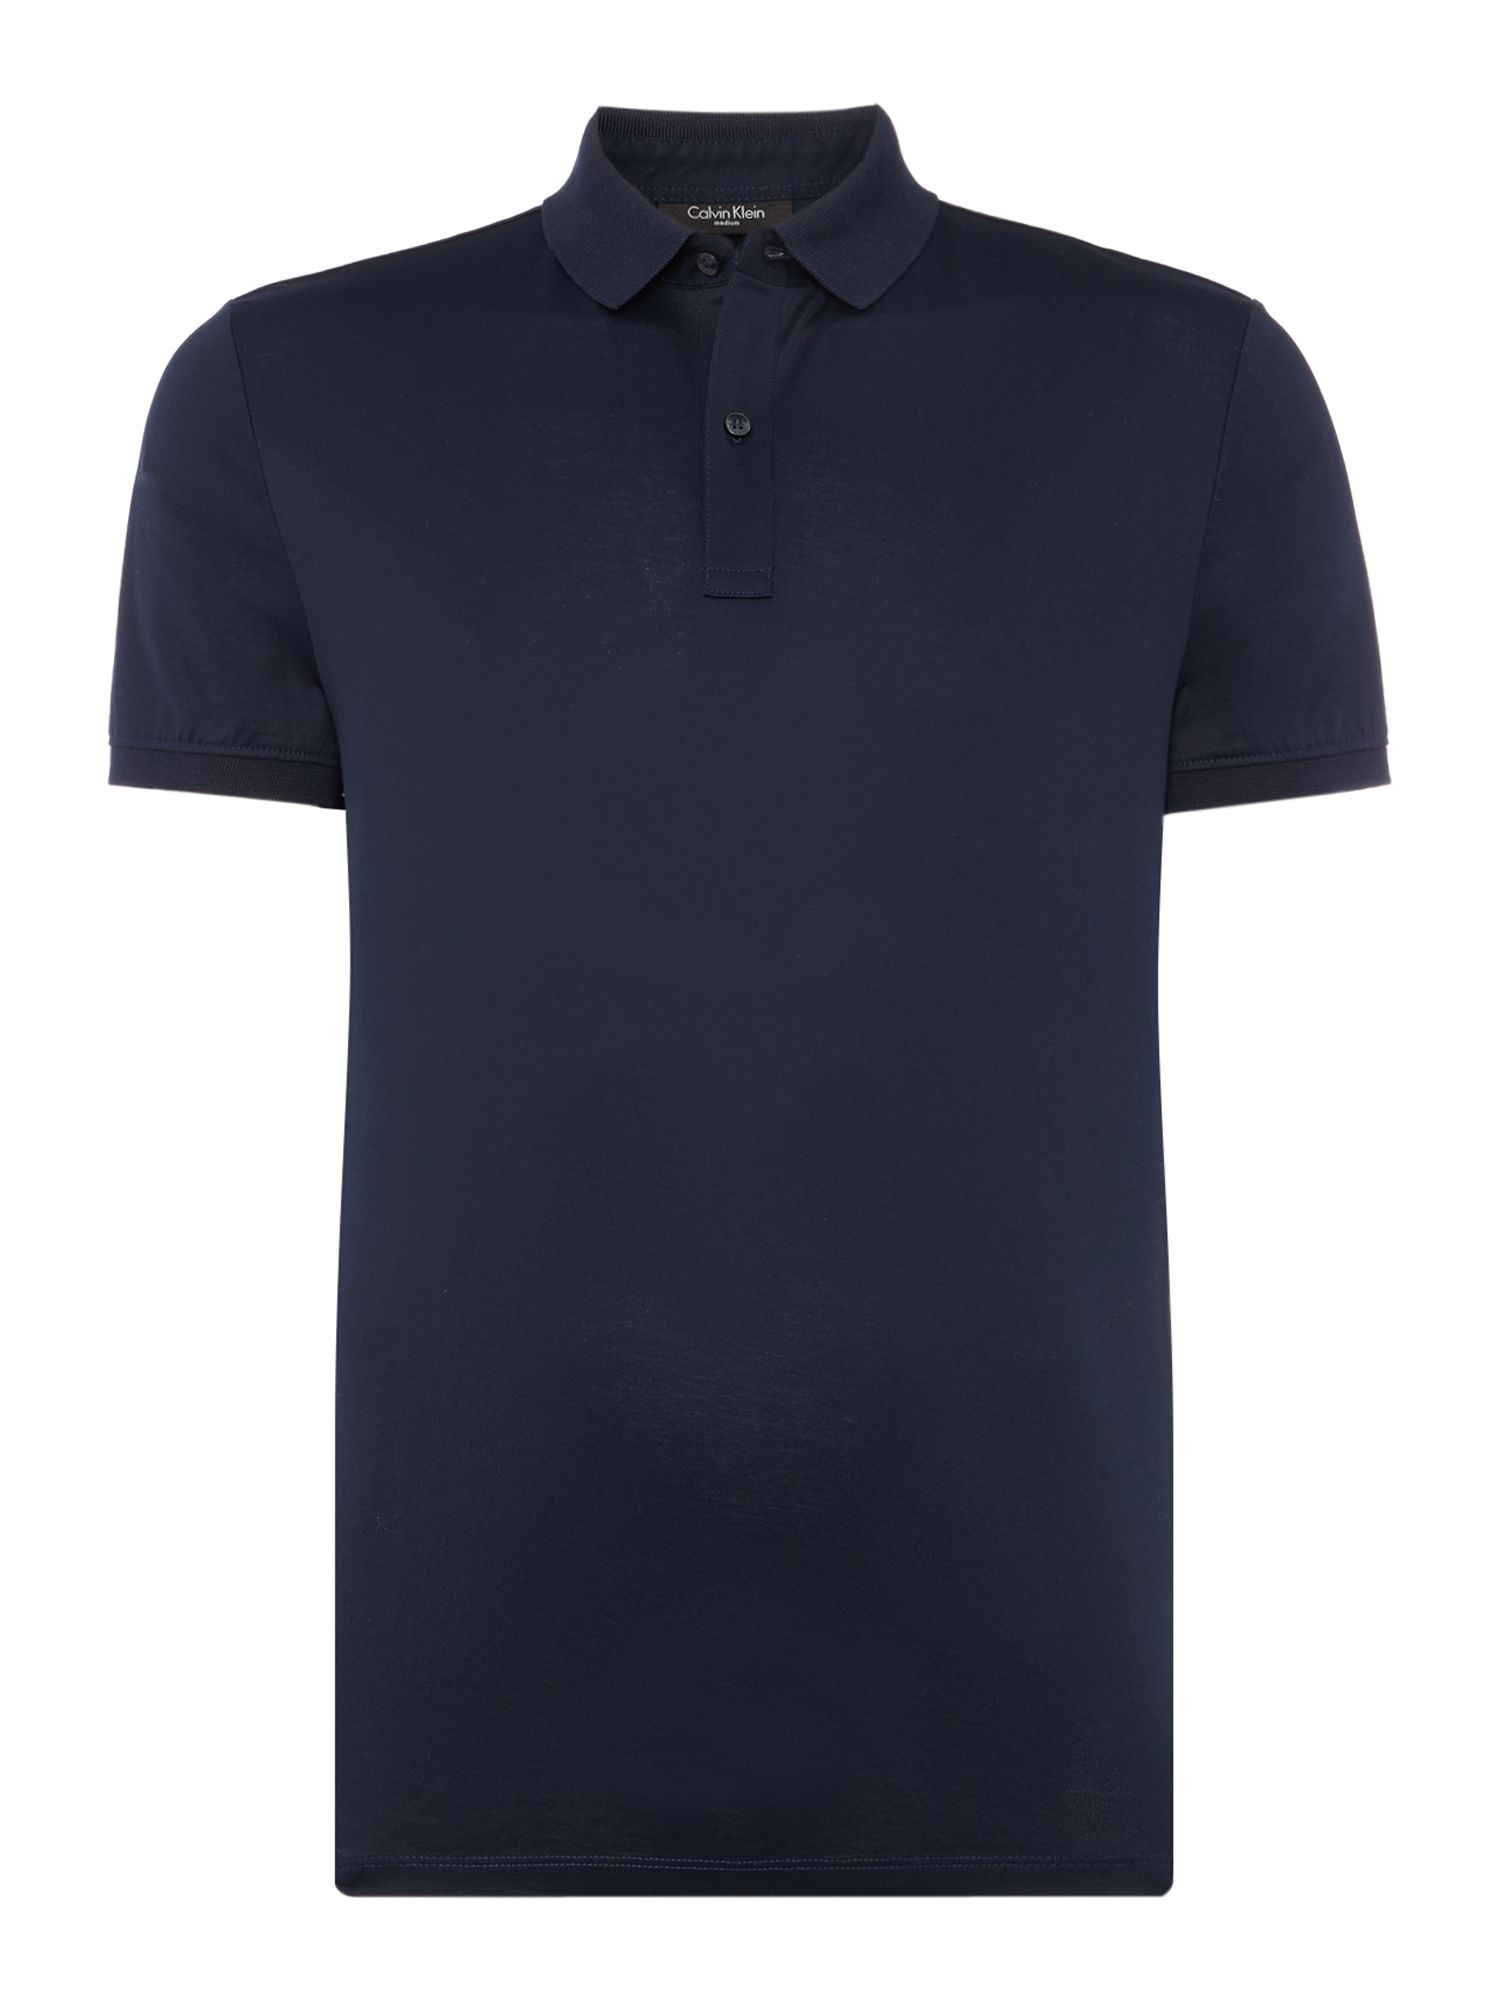 Men's Calvin Klein Jantol Polo Top, Blue